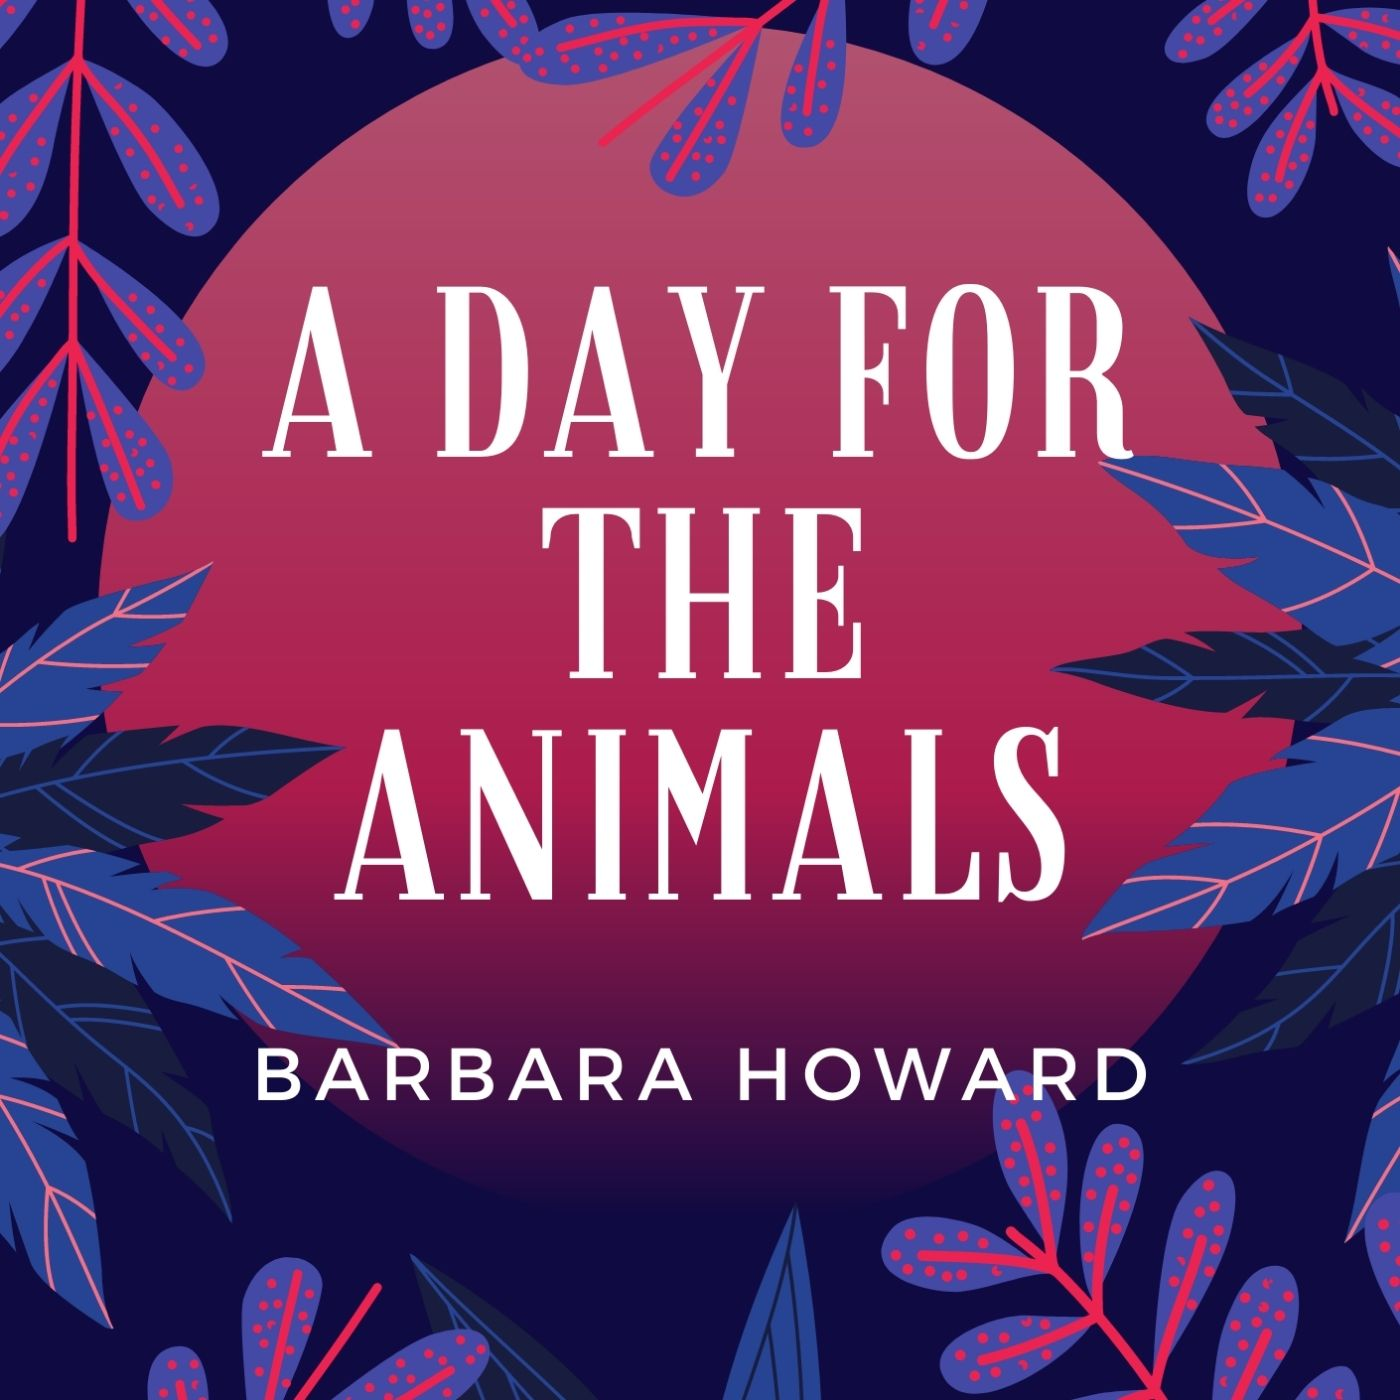 A Day for the Animals Audiobook Cover